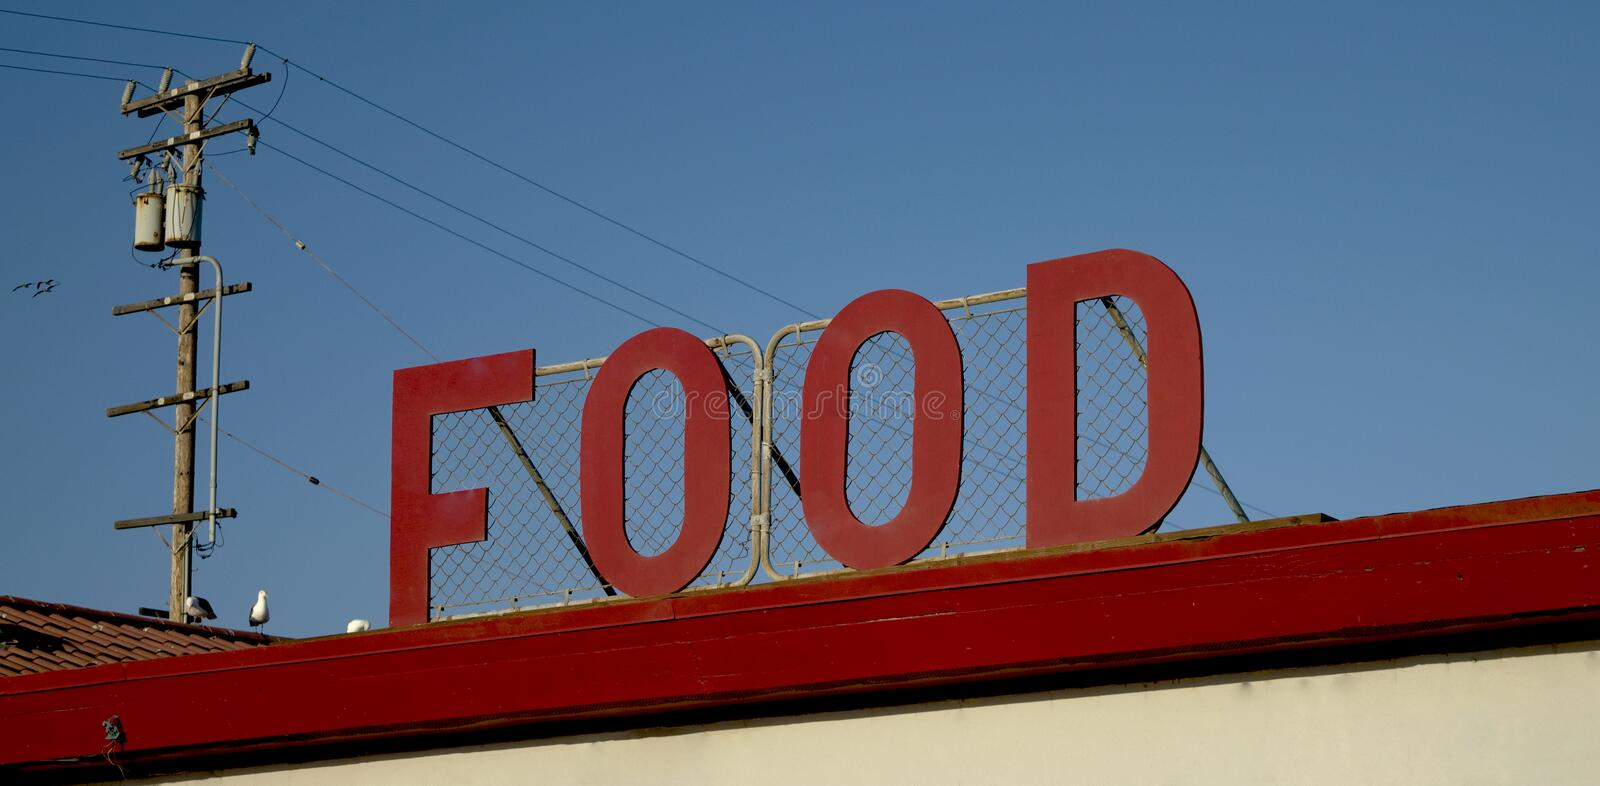 Food. Spotted this Food joint at the beach royalty free stock photo